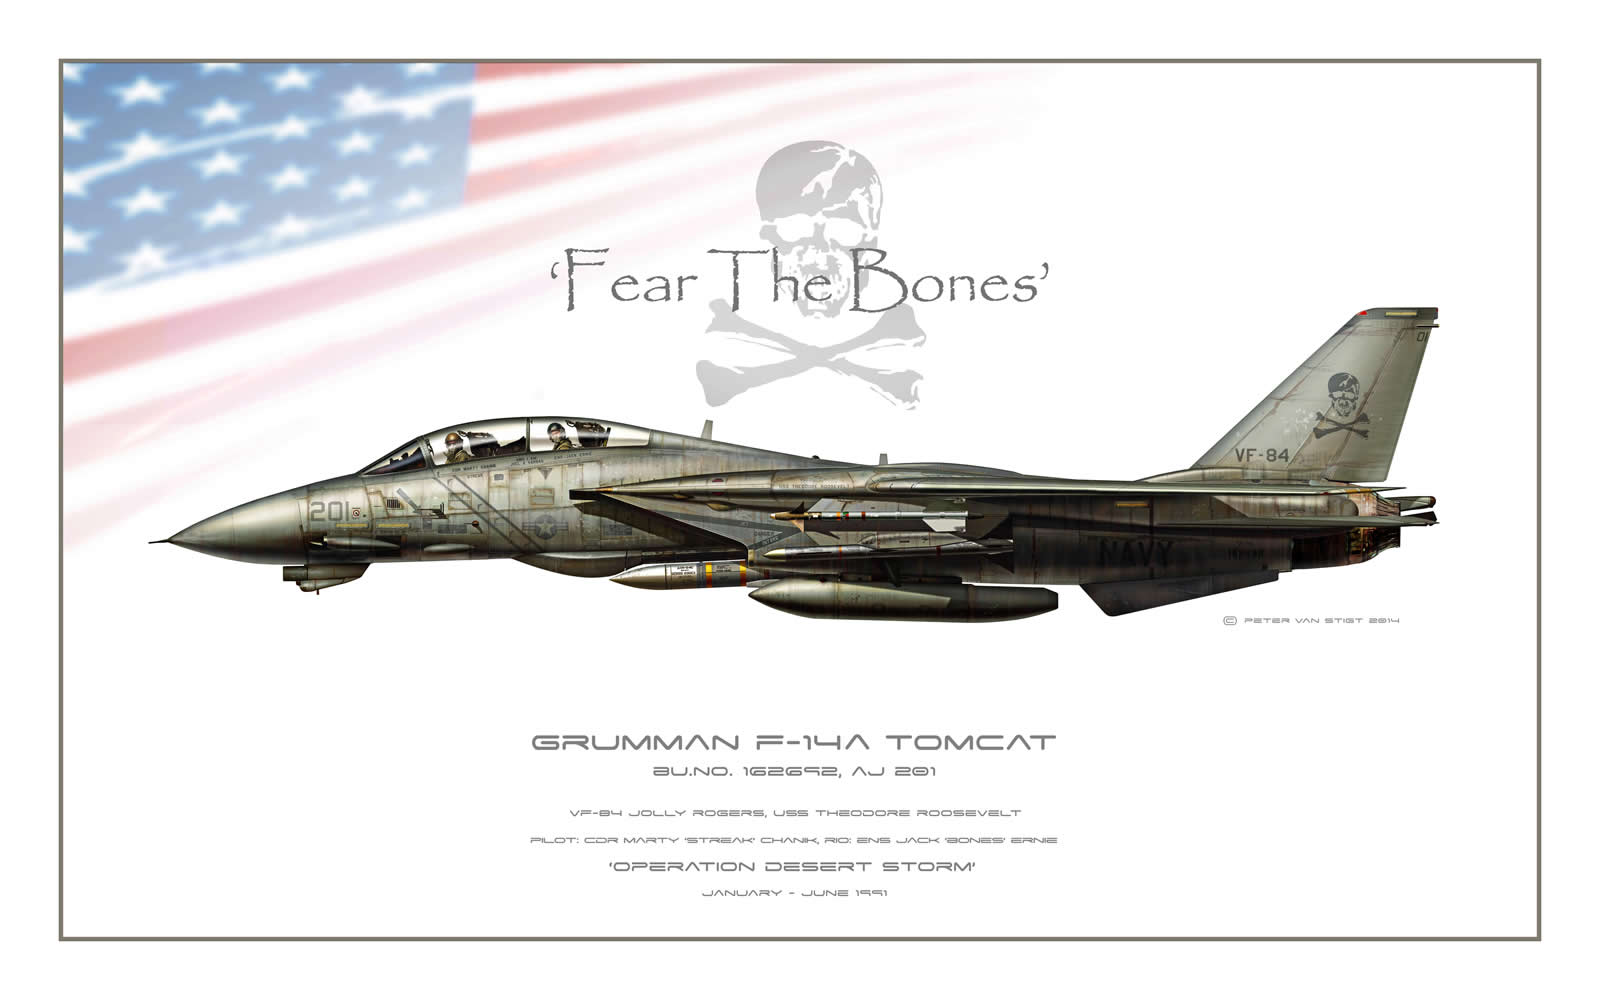 VF-84 Jolly Rogers Low Viz F-14 Tomcat Profile